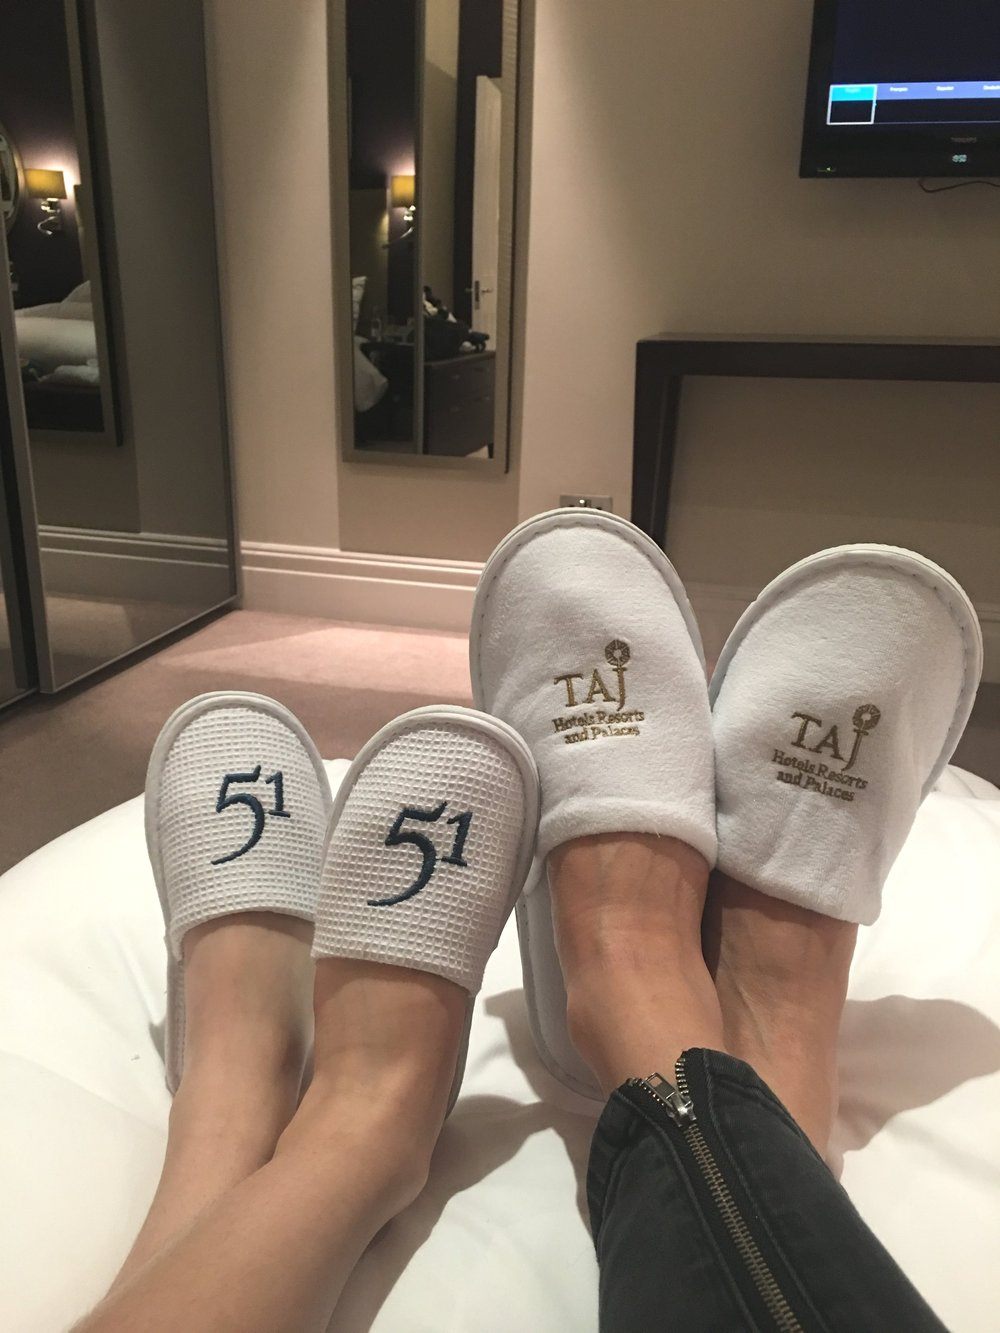 Hers and Mine Slippers